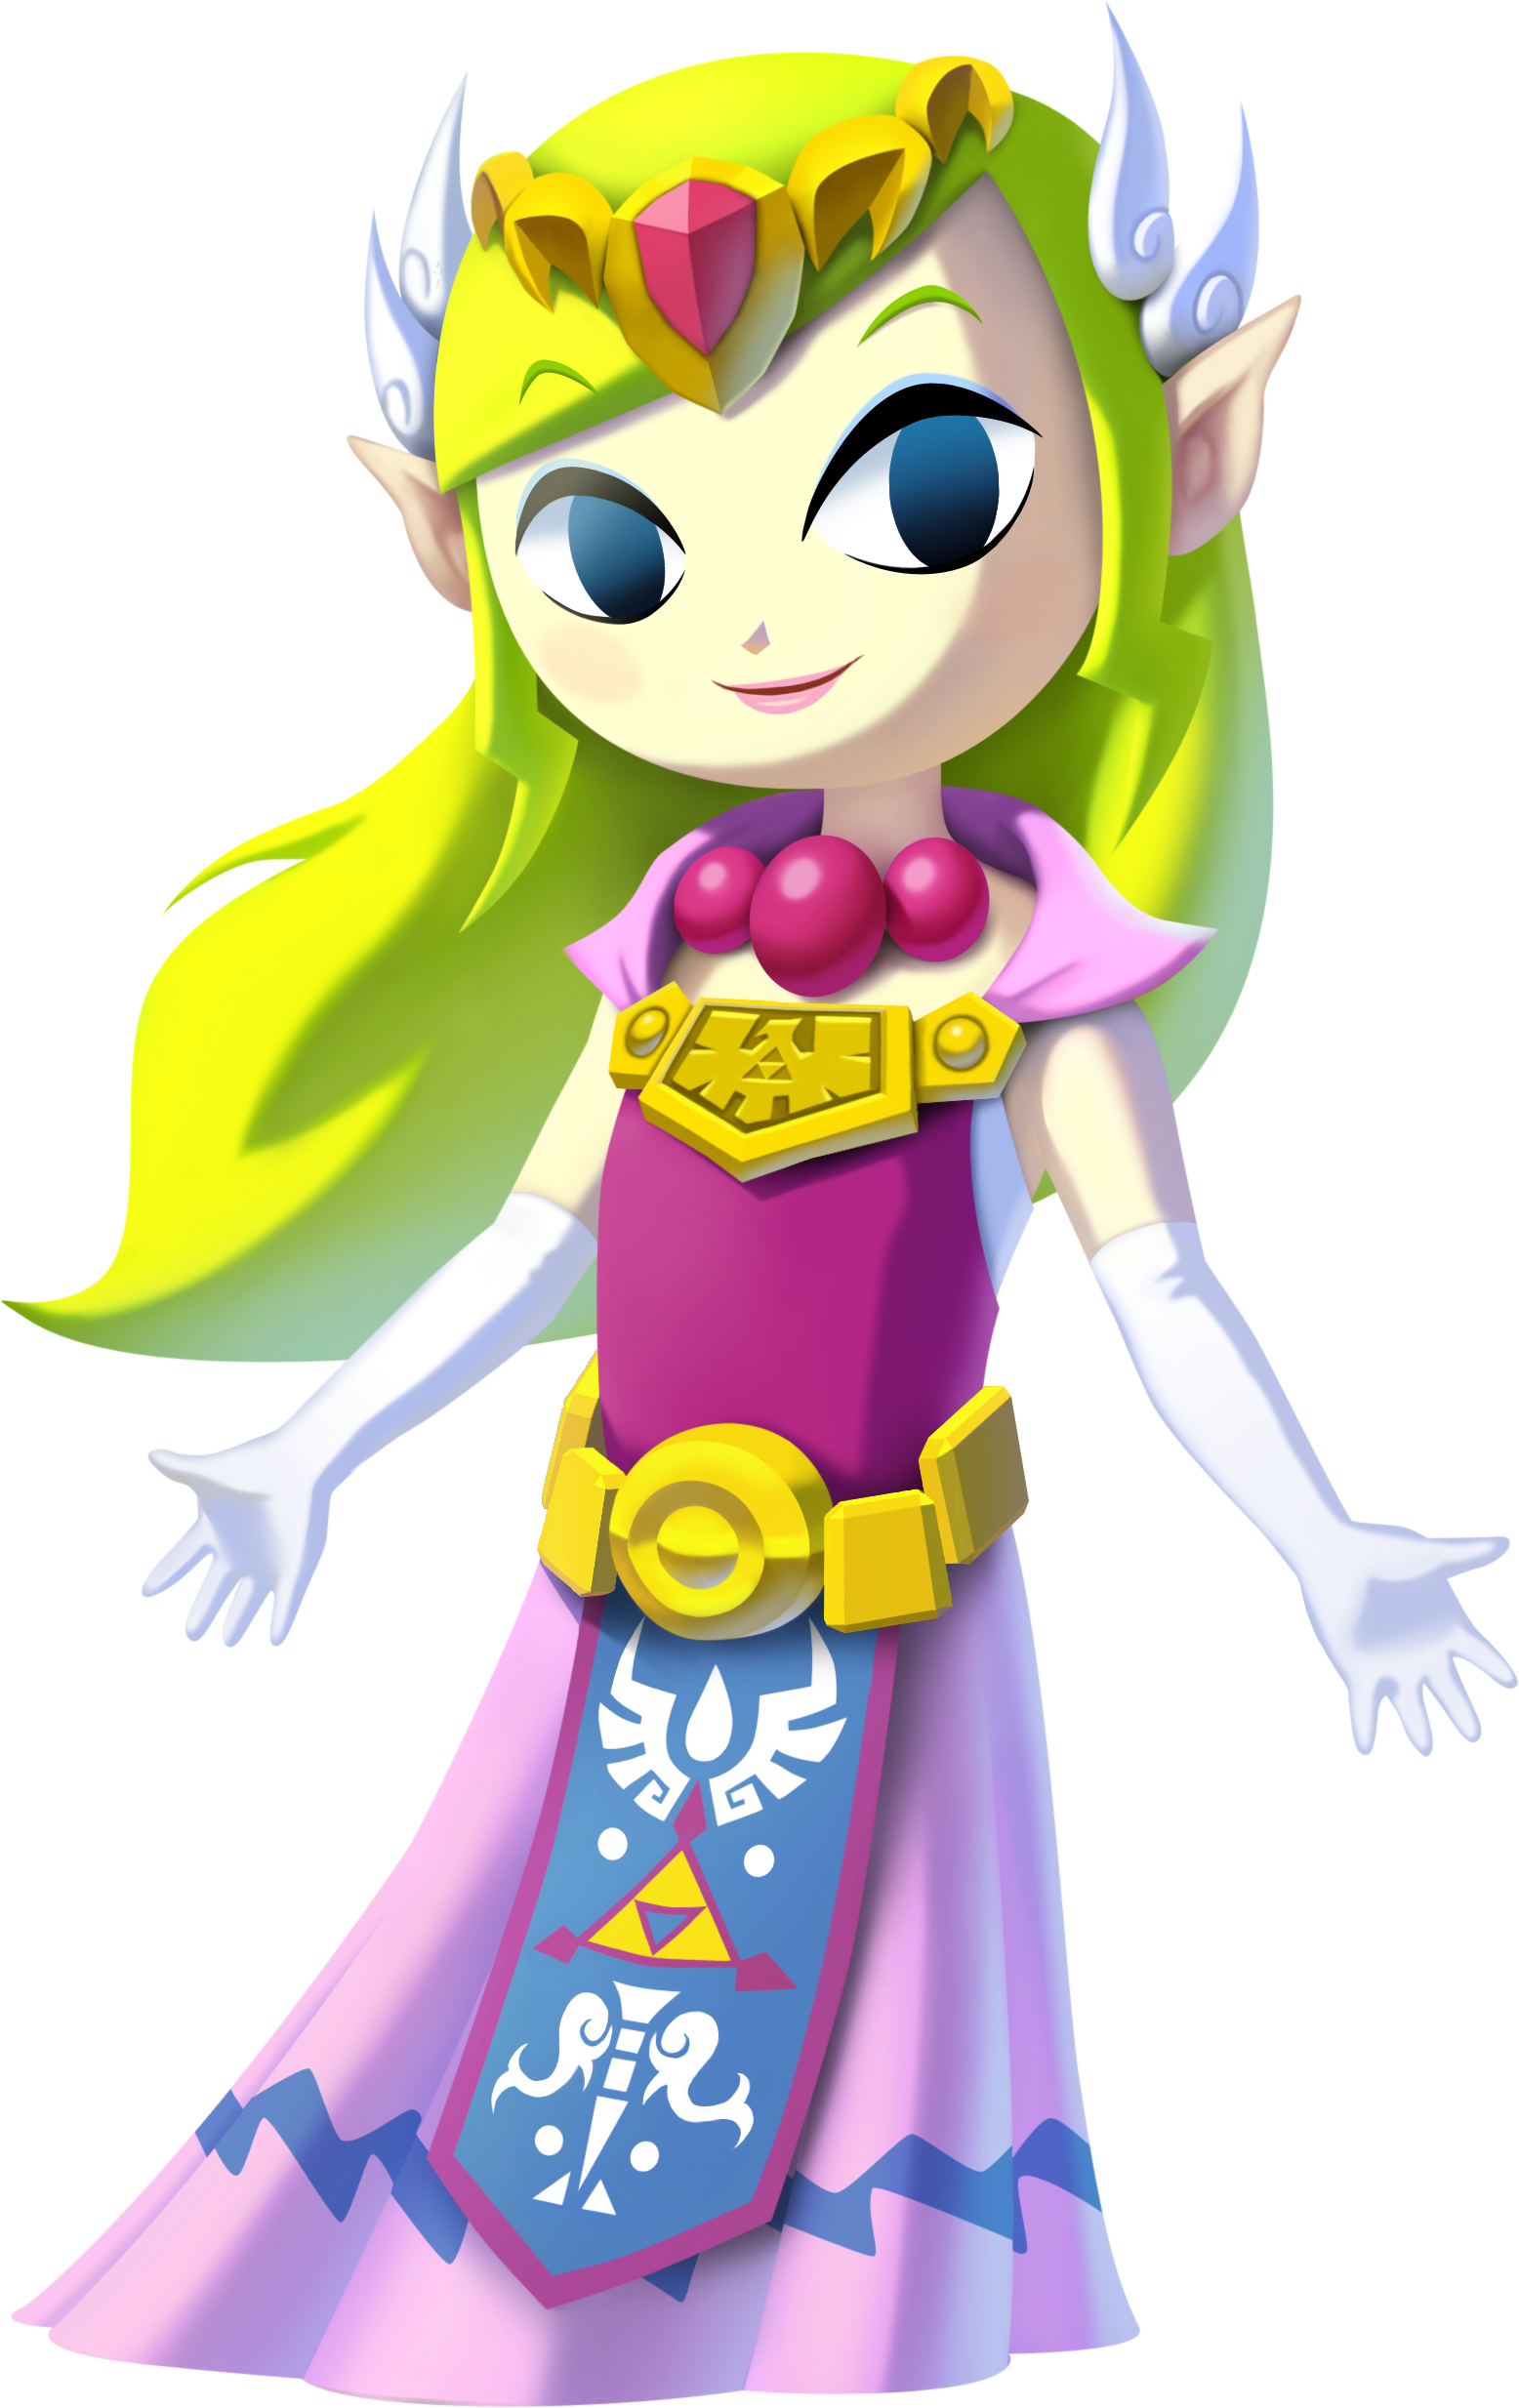 Heat clipart miserable. Toon zelda google search